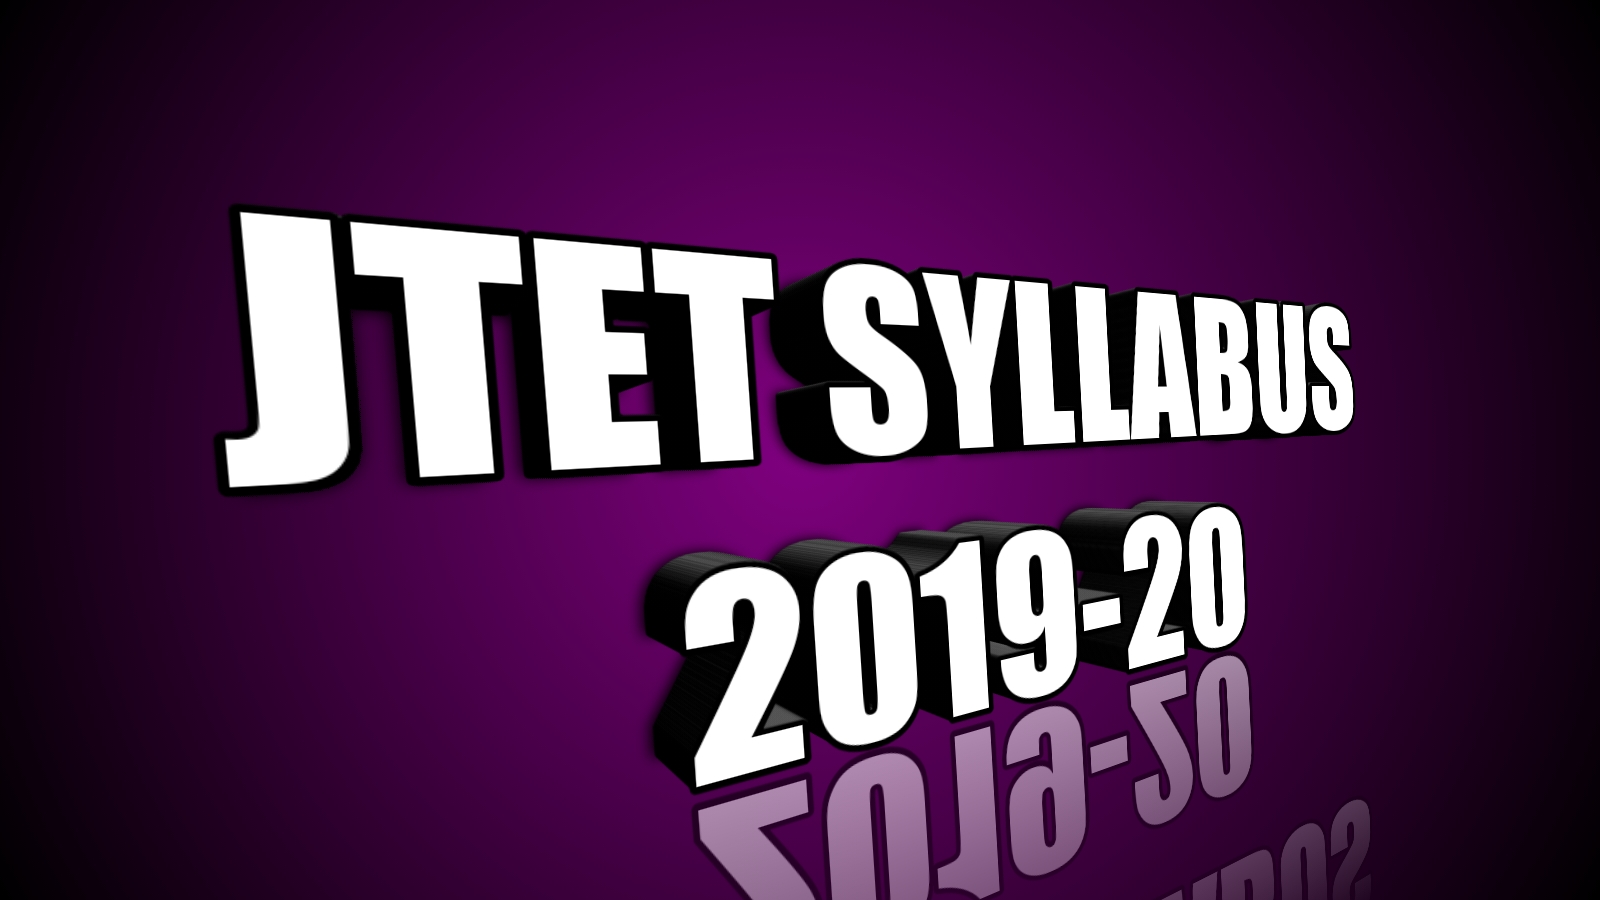 JTET Syllabus 2019-20, Section and Subject Wise Syllabus